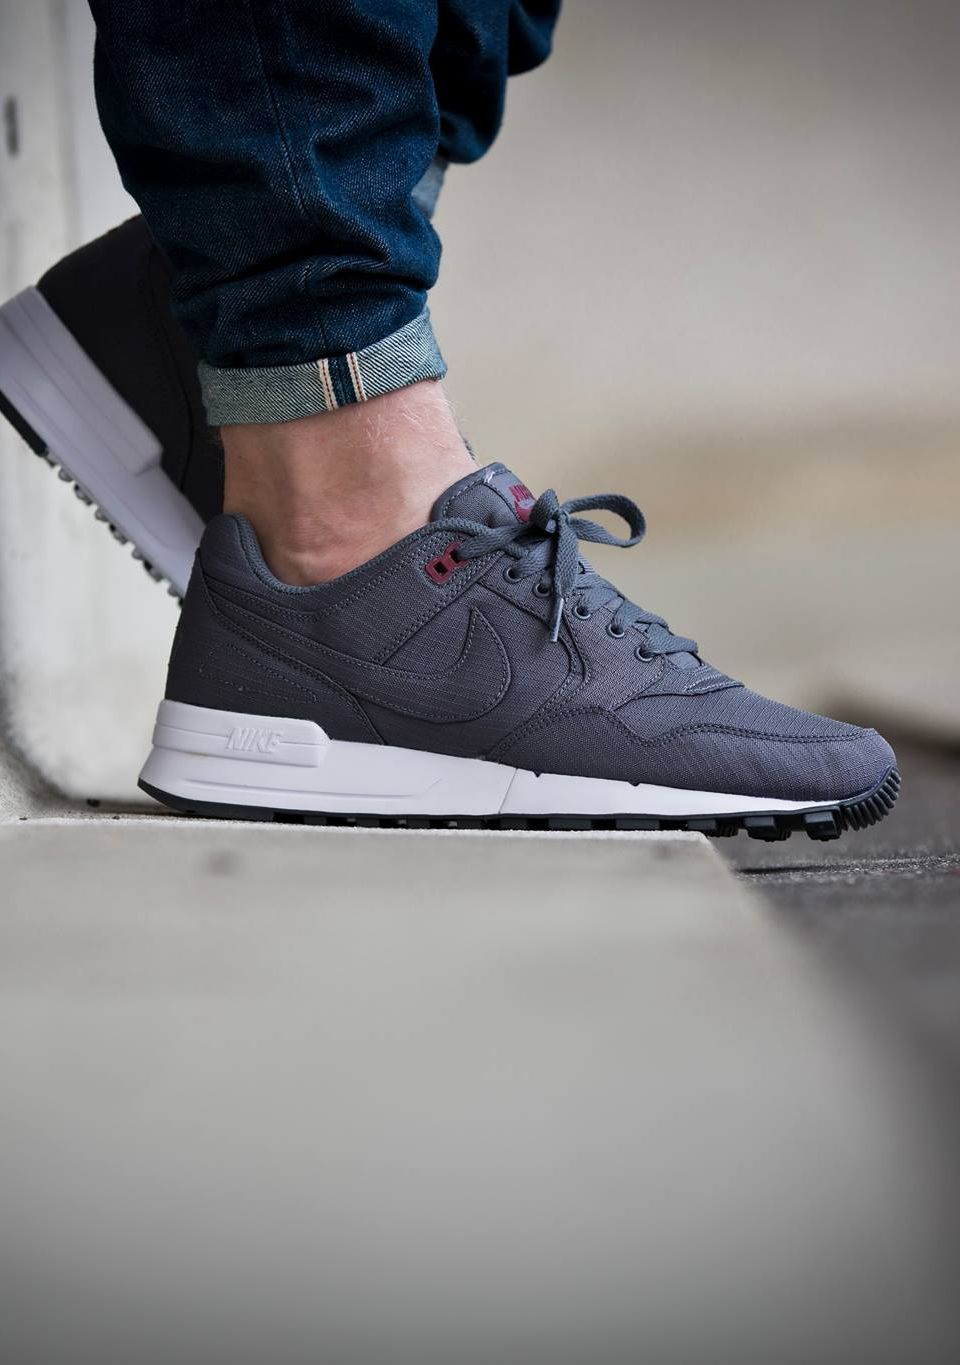 acheter populaire 3c71d e82fc Nike Air Pegasus 89 TXT via 43einhalb Buy it @Jdsports.co.uk ...